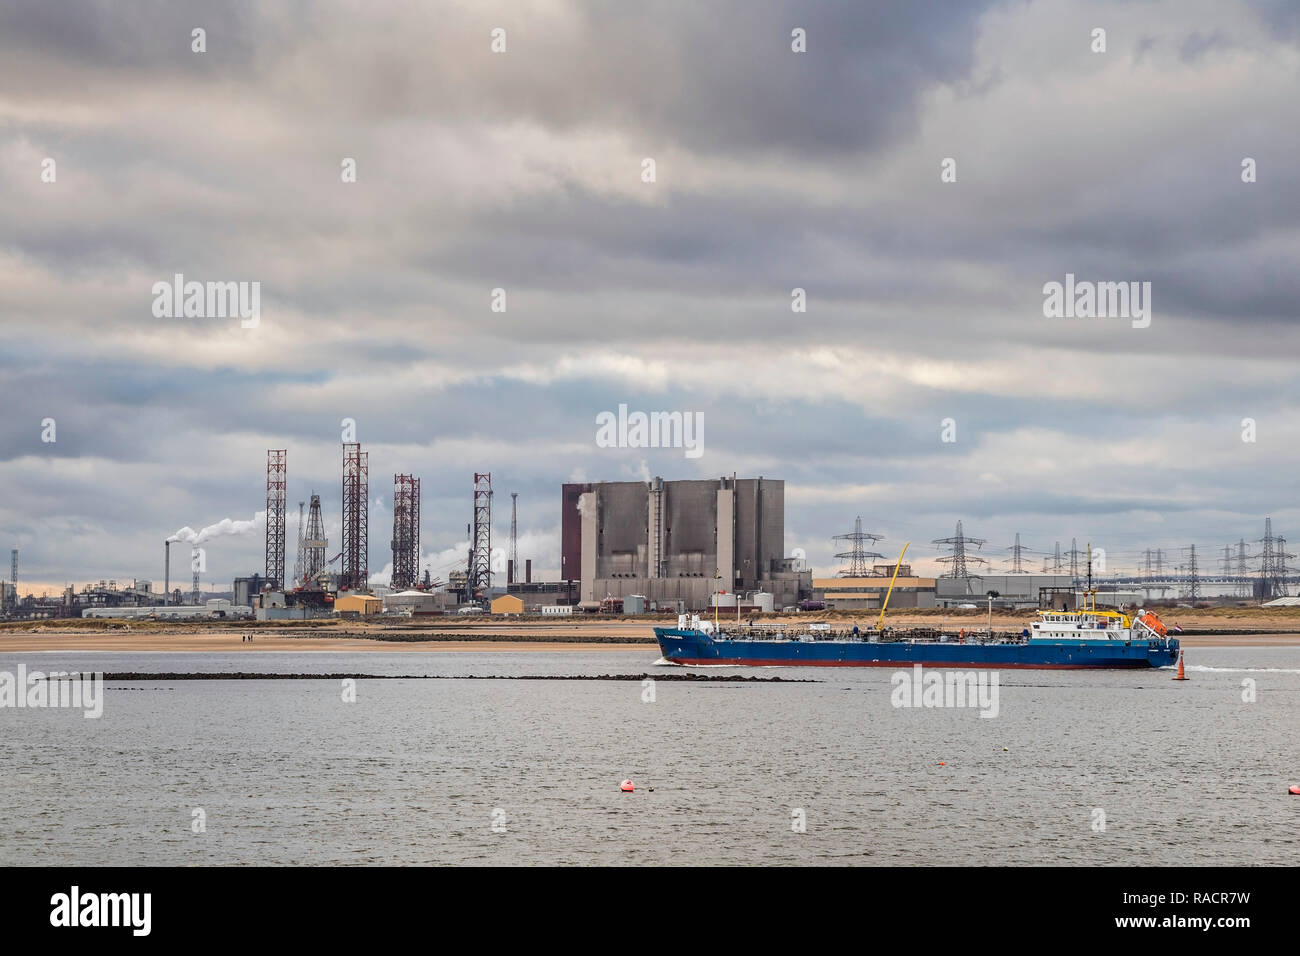 The LPG Tanker, Typhoon Passing Hartlepool Advanced Gas Cooled Reactor Nuclear Power Station, Teesmouth, North East England, UK, - Stock Image